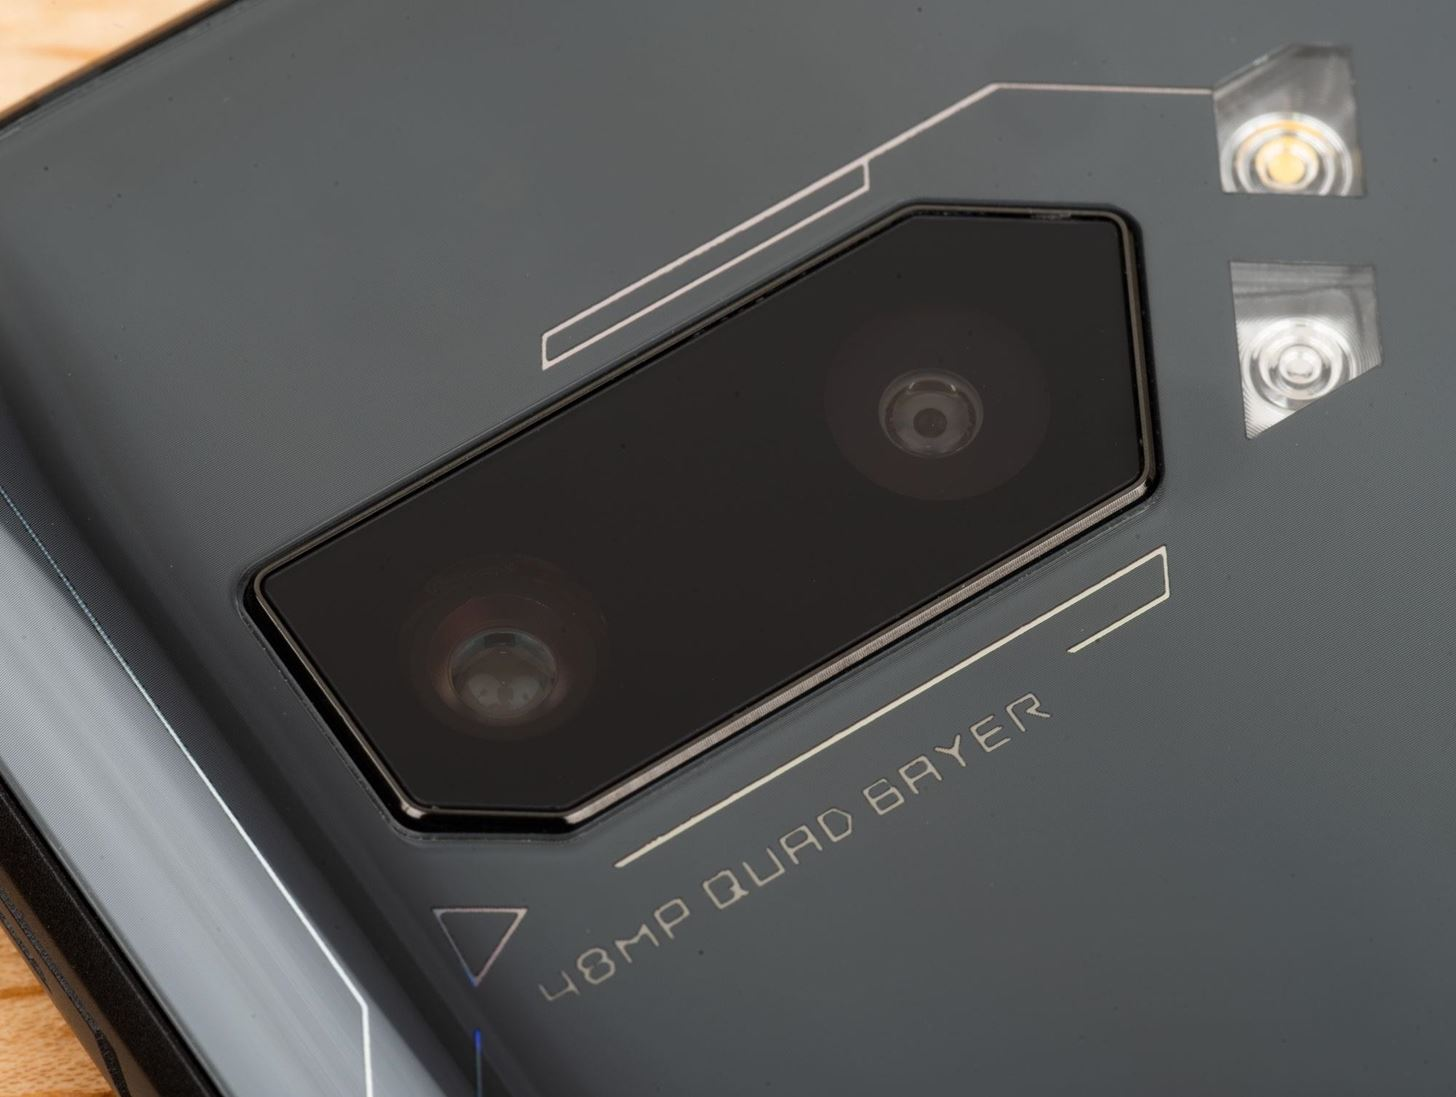 ASUS ROG Phone II: The Gaming Phone for Everyone